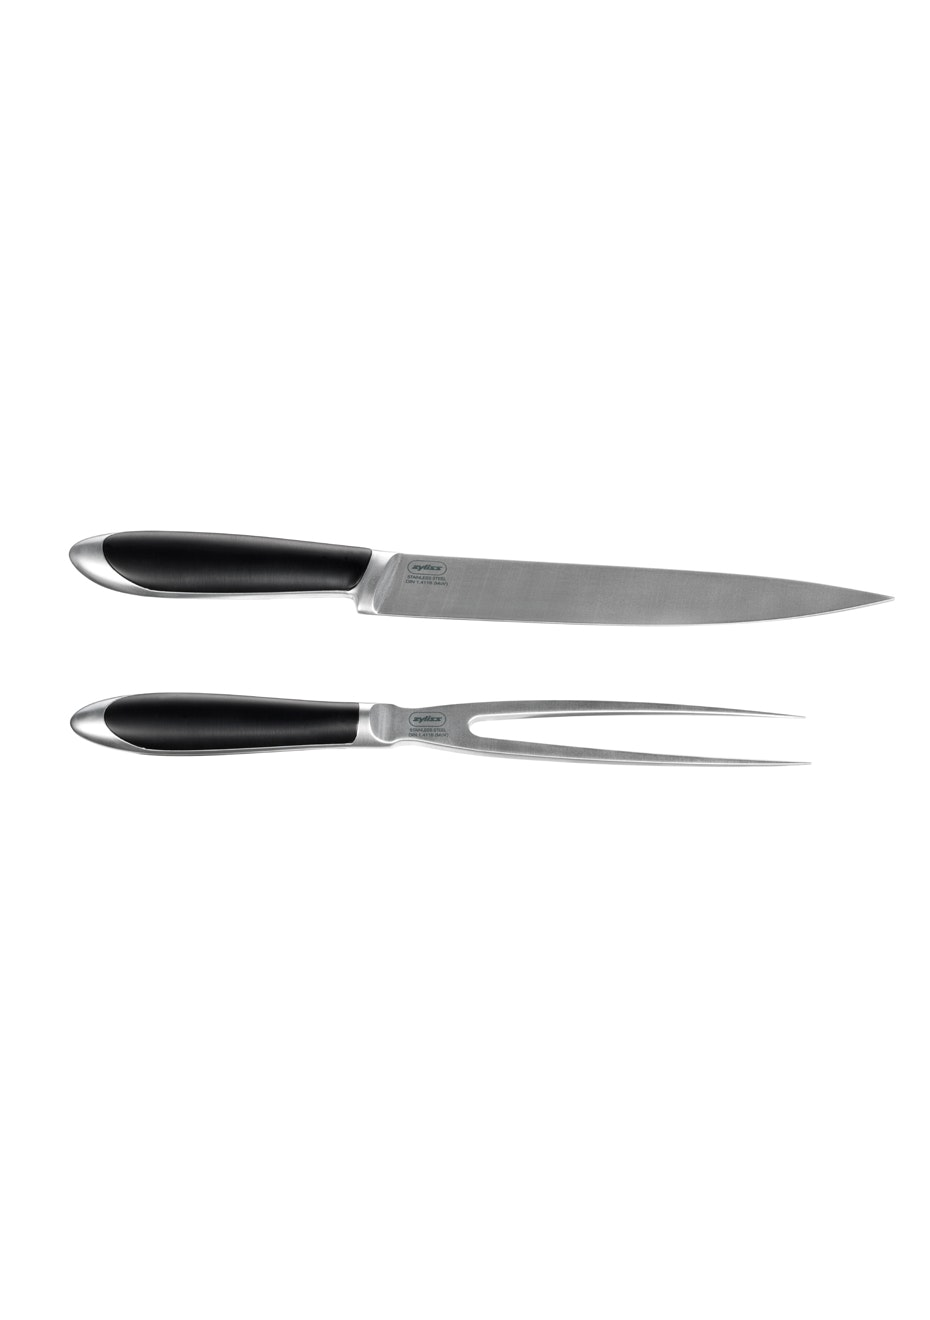 Zyliss - Select Carving Set 2pc